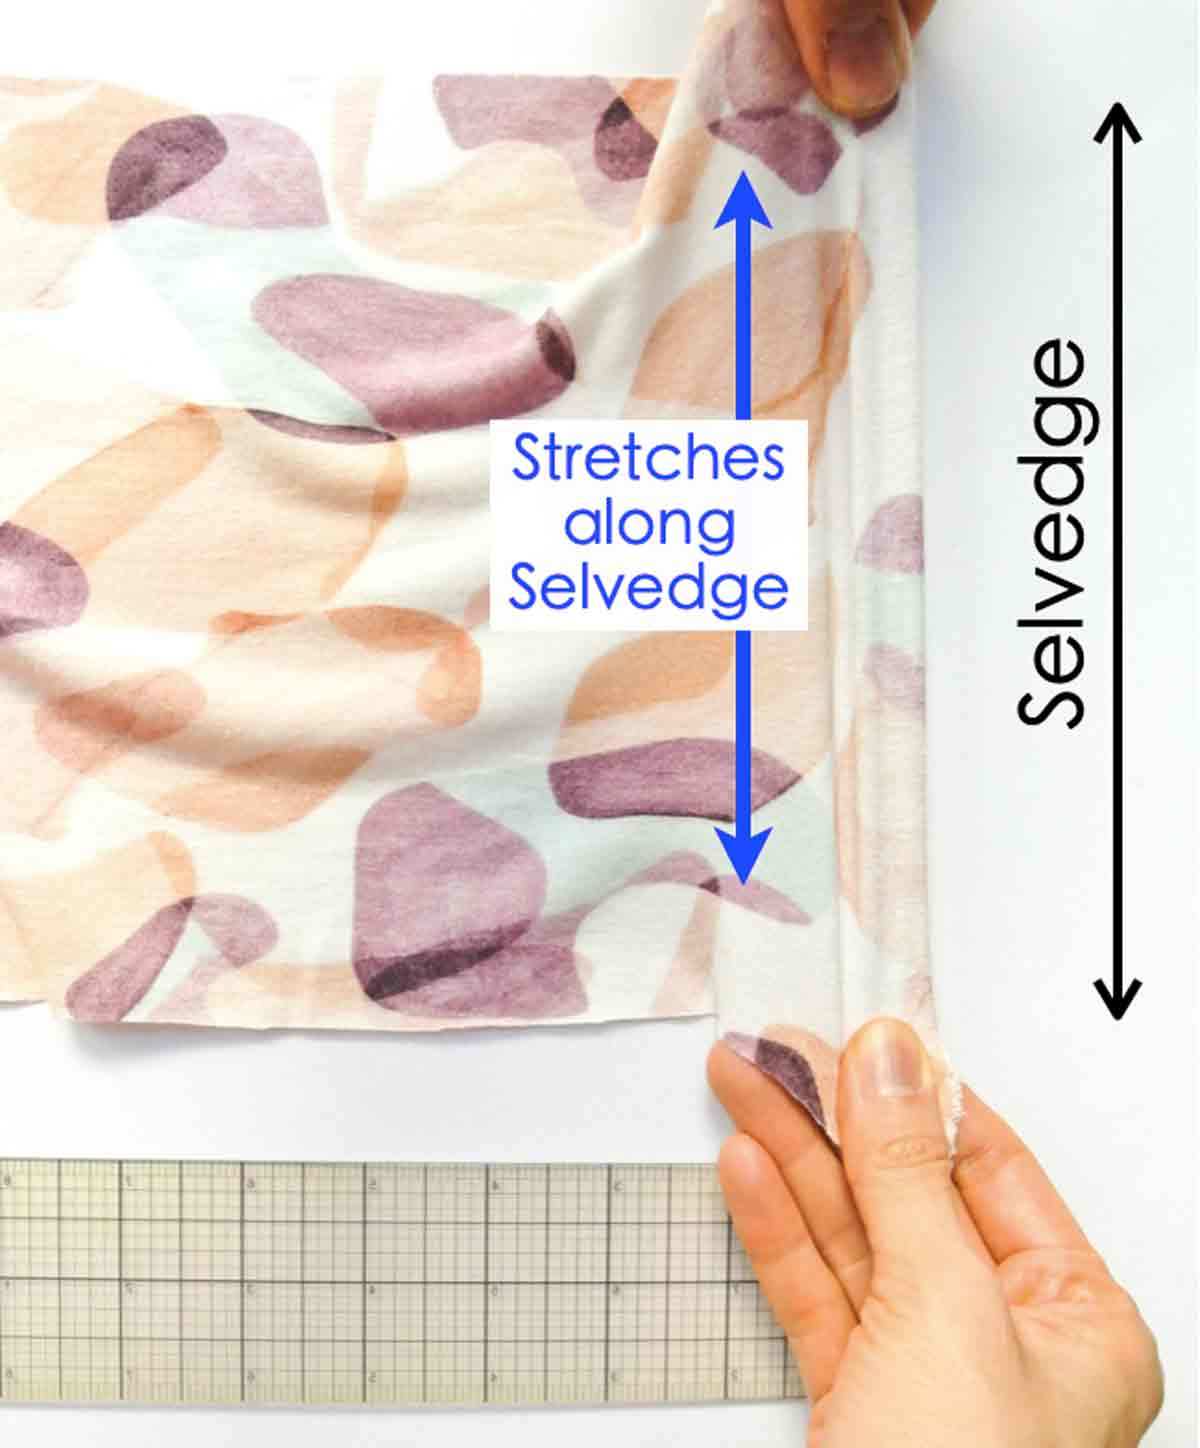 Shows hands pulling on 4 way stretch knit in vertical direction